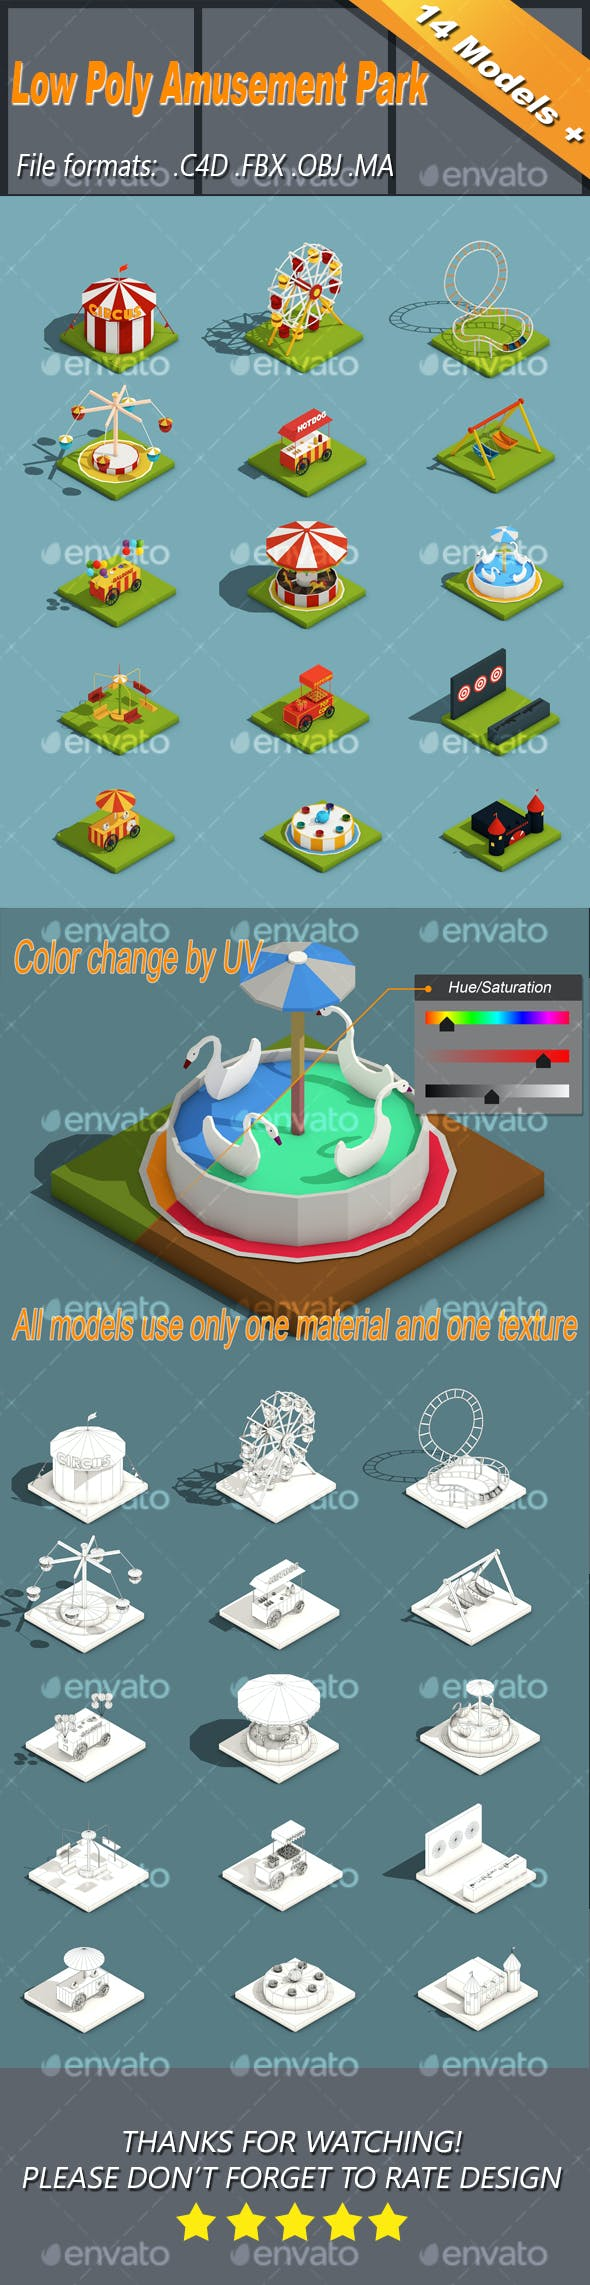 Low Poly Amusement Park Isometric Icon - 3DOcean Item for Sale